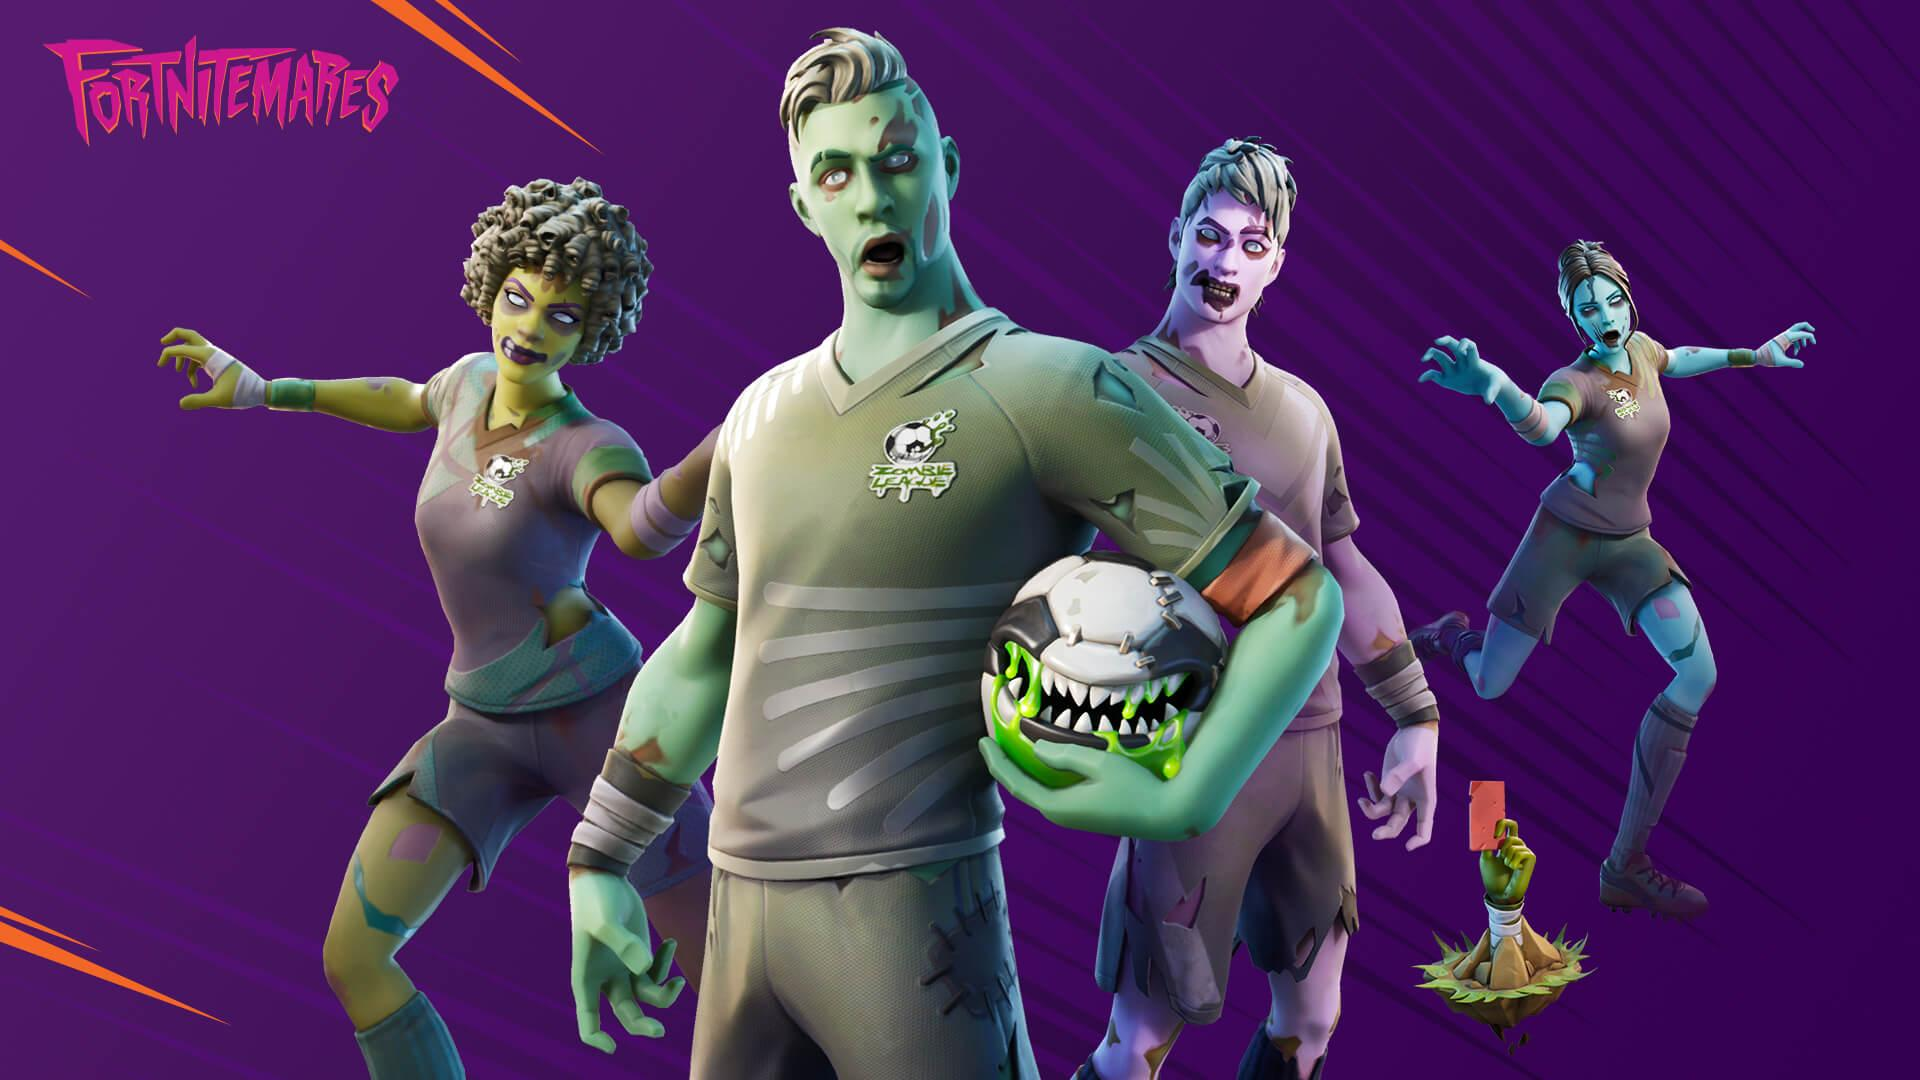 Fortnitemares Returns To Fortnite With Halloween Skins, New